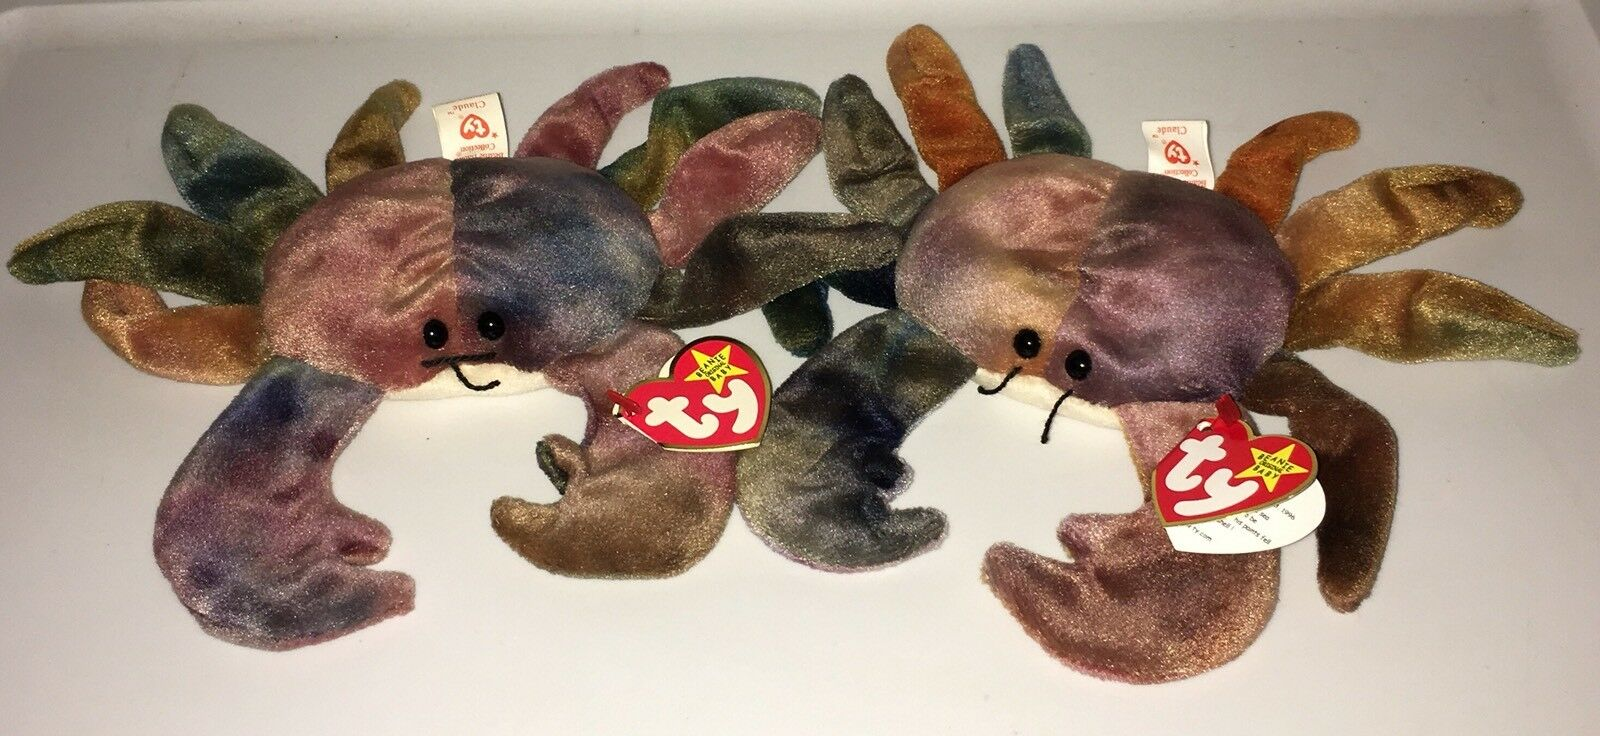 2 AUTHENTIC TY BEANIE BABY CLAUDE THE CRAB RETIRED W TAGS